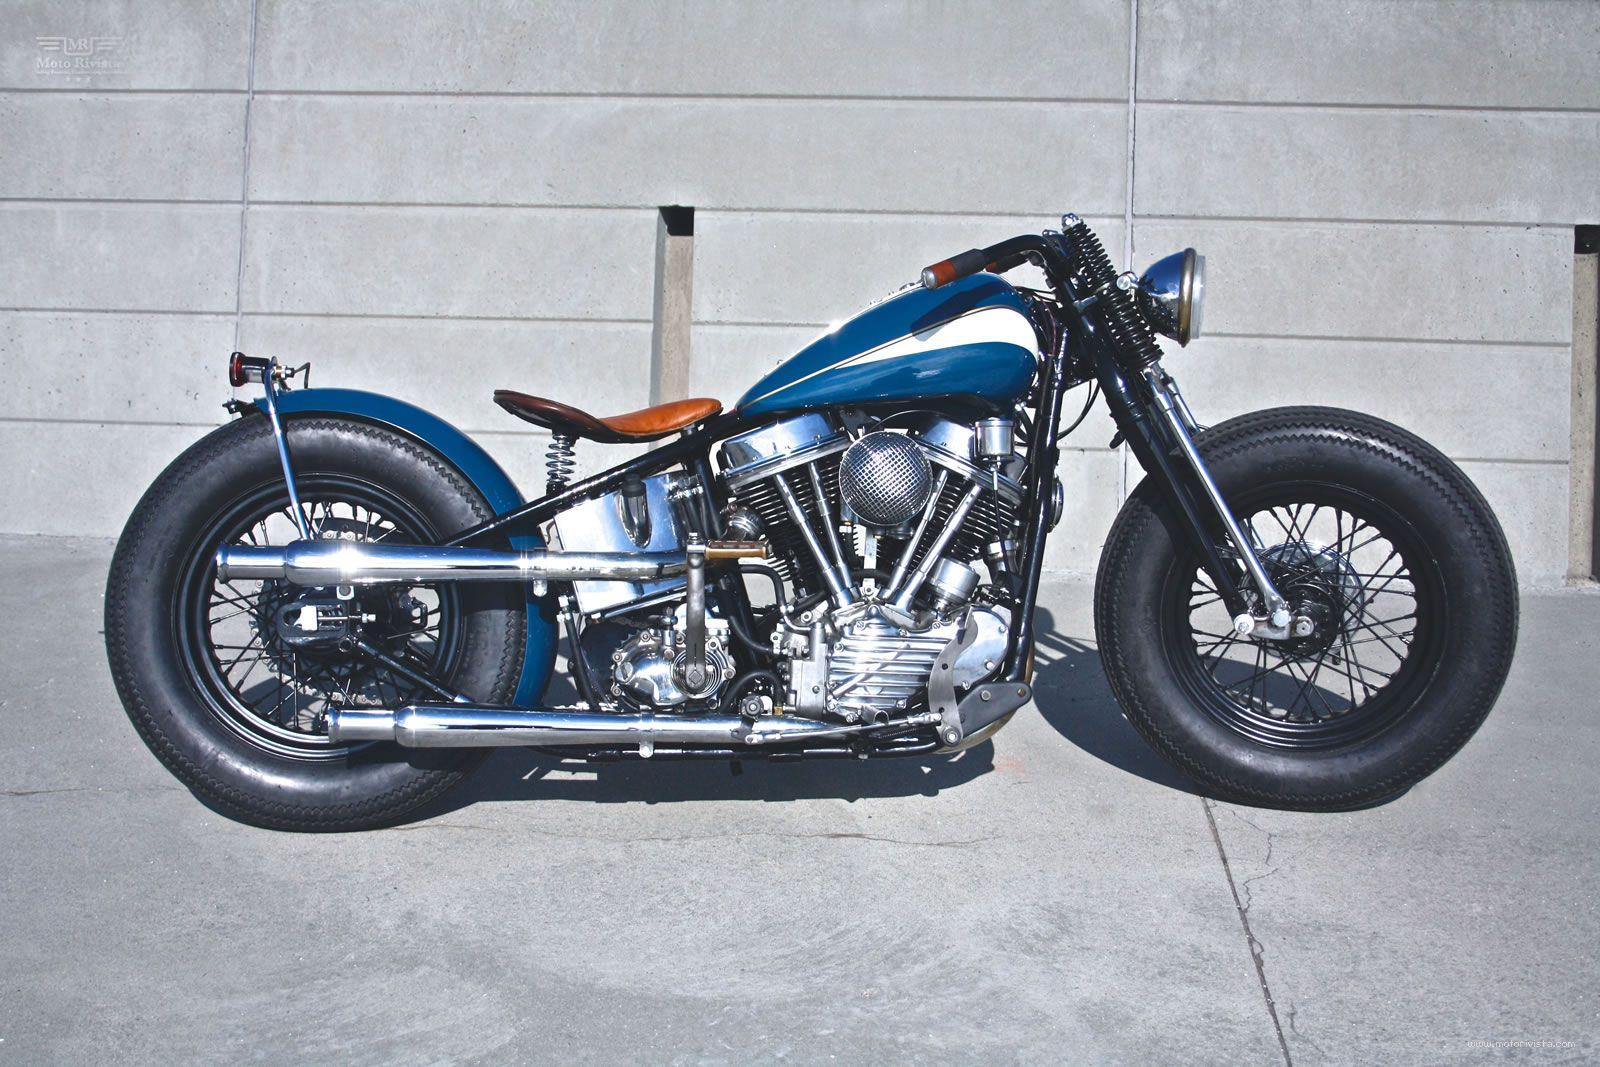 small resolution of james from customs from jamesville has done it again this time he has created a bold and beautiful 48 custom panhead about a year ago i